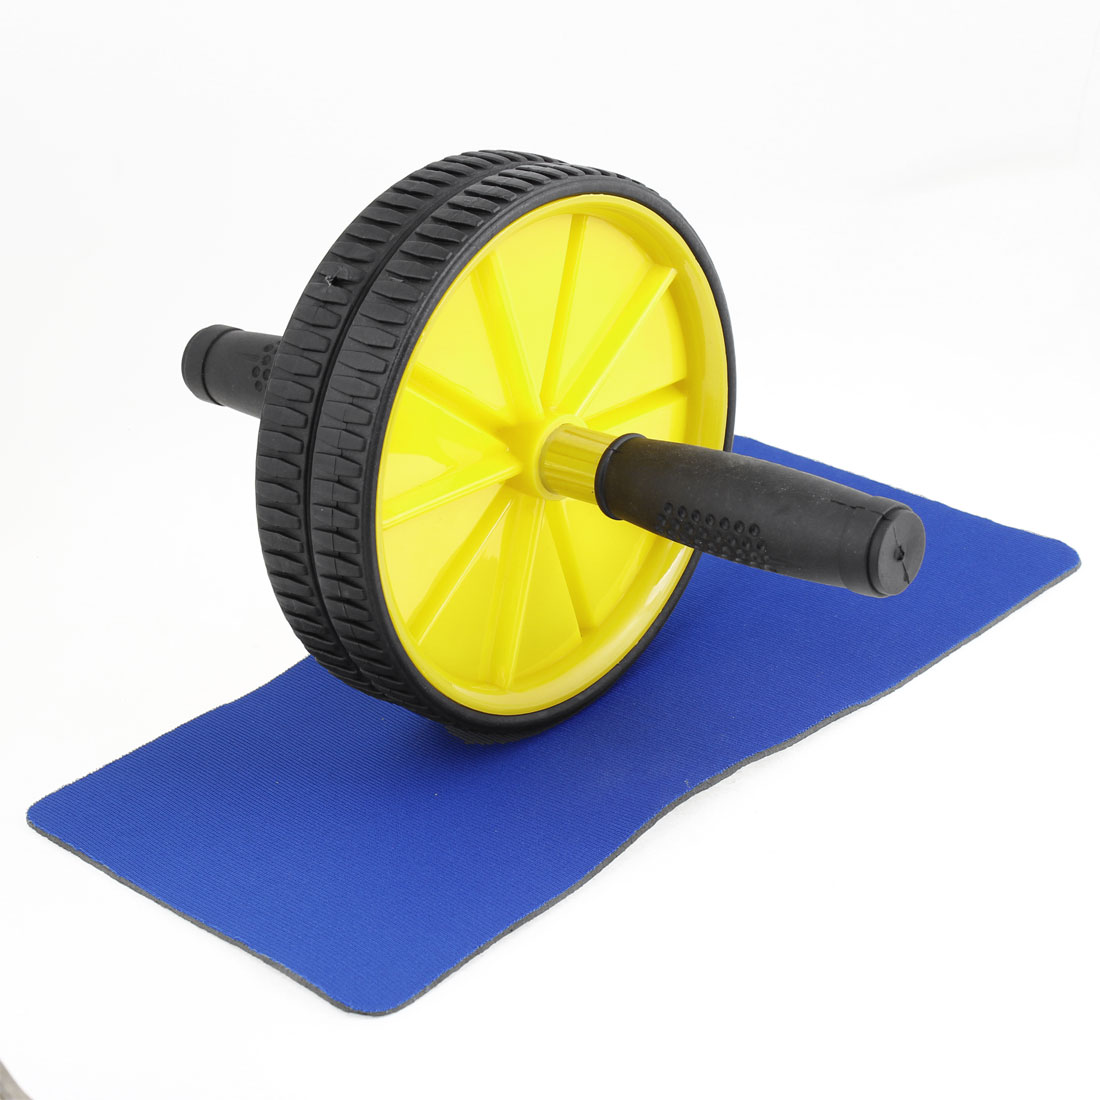 17.5cm Dual Yellow Plastic Wheels Plastic Coated Handle Grip Abdominal Roller